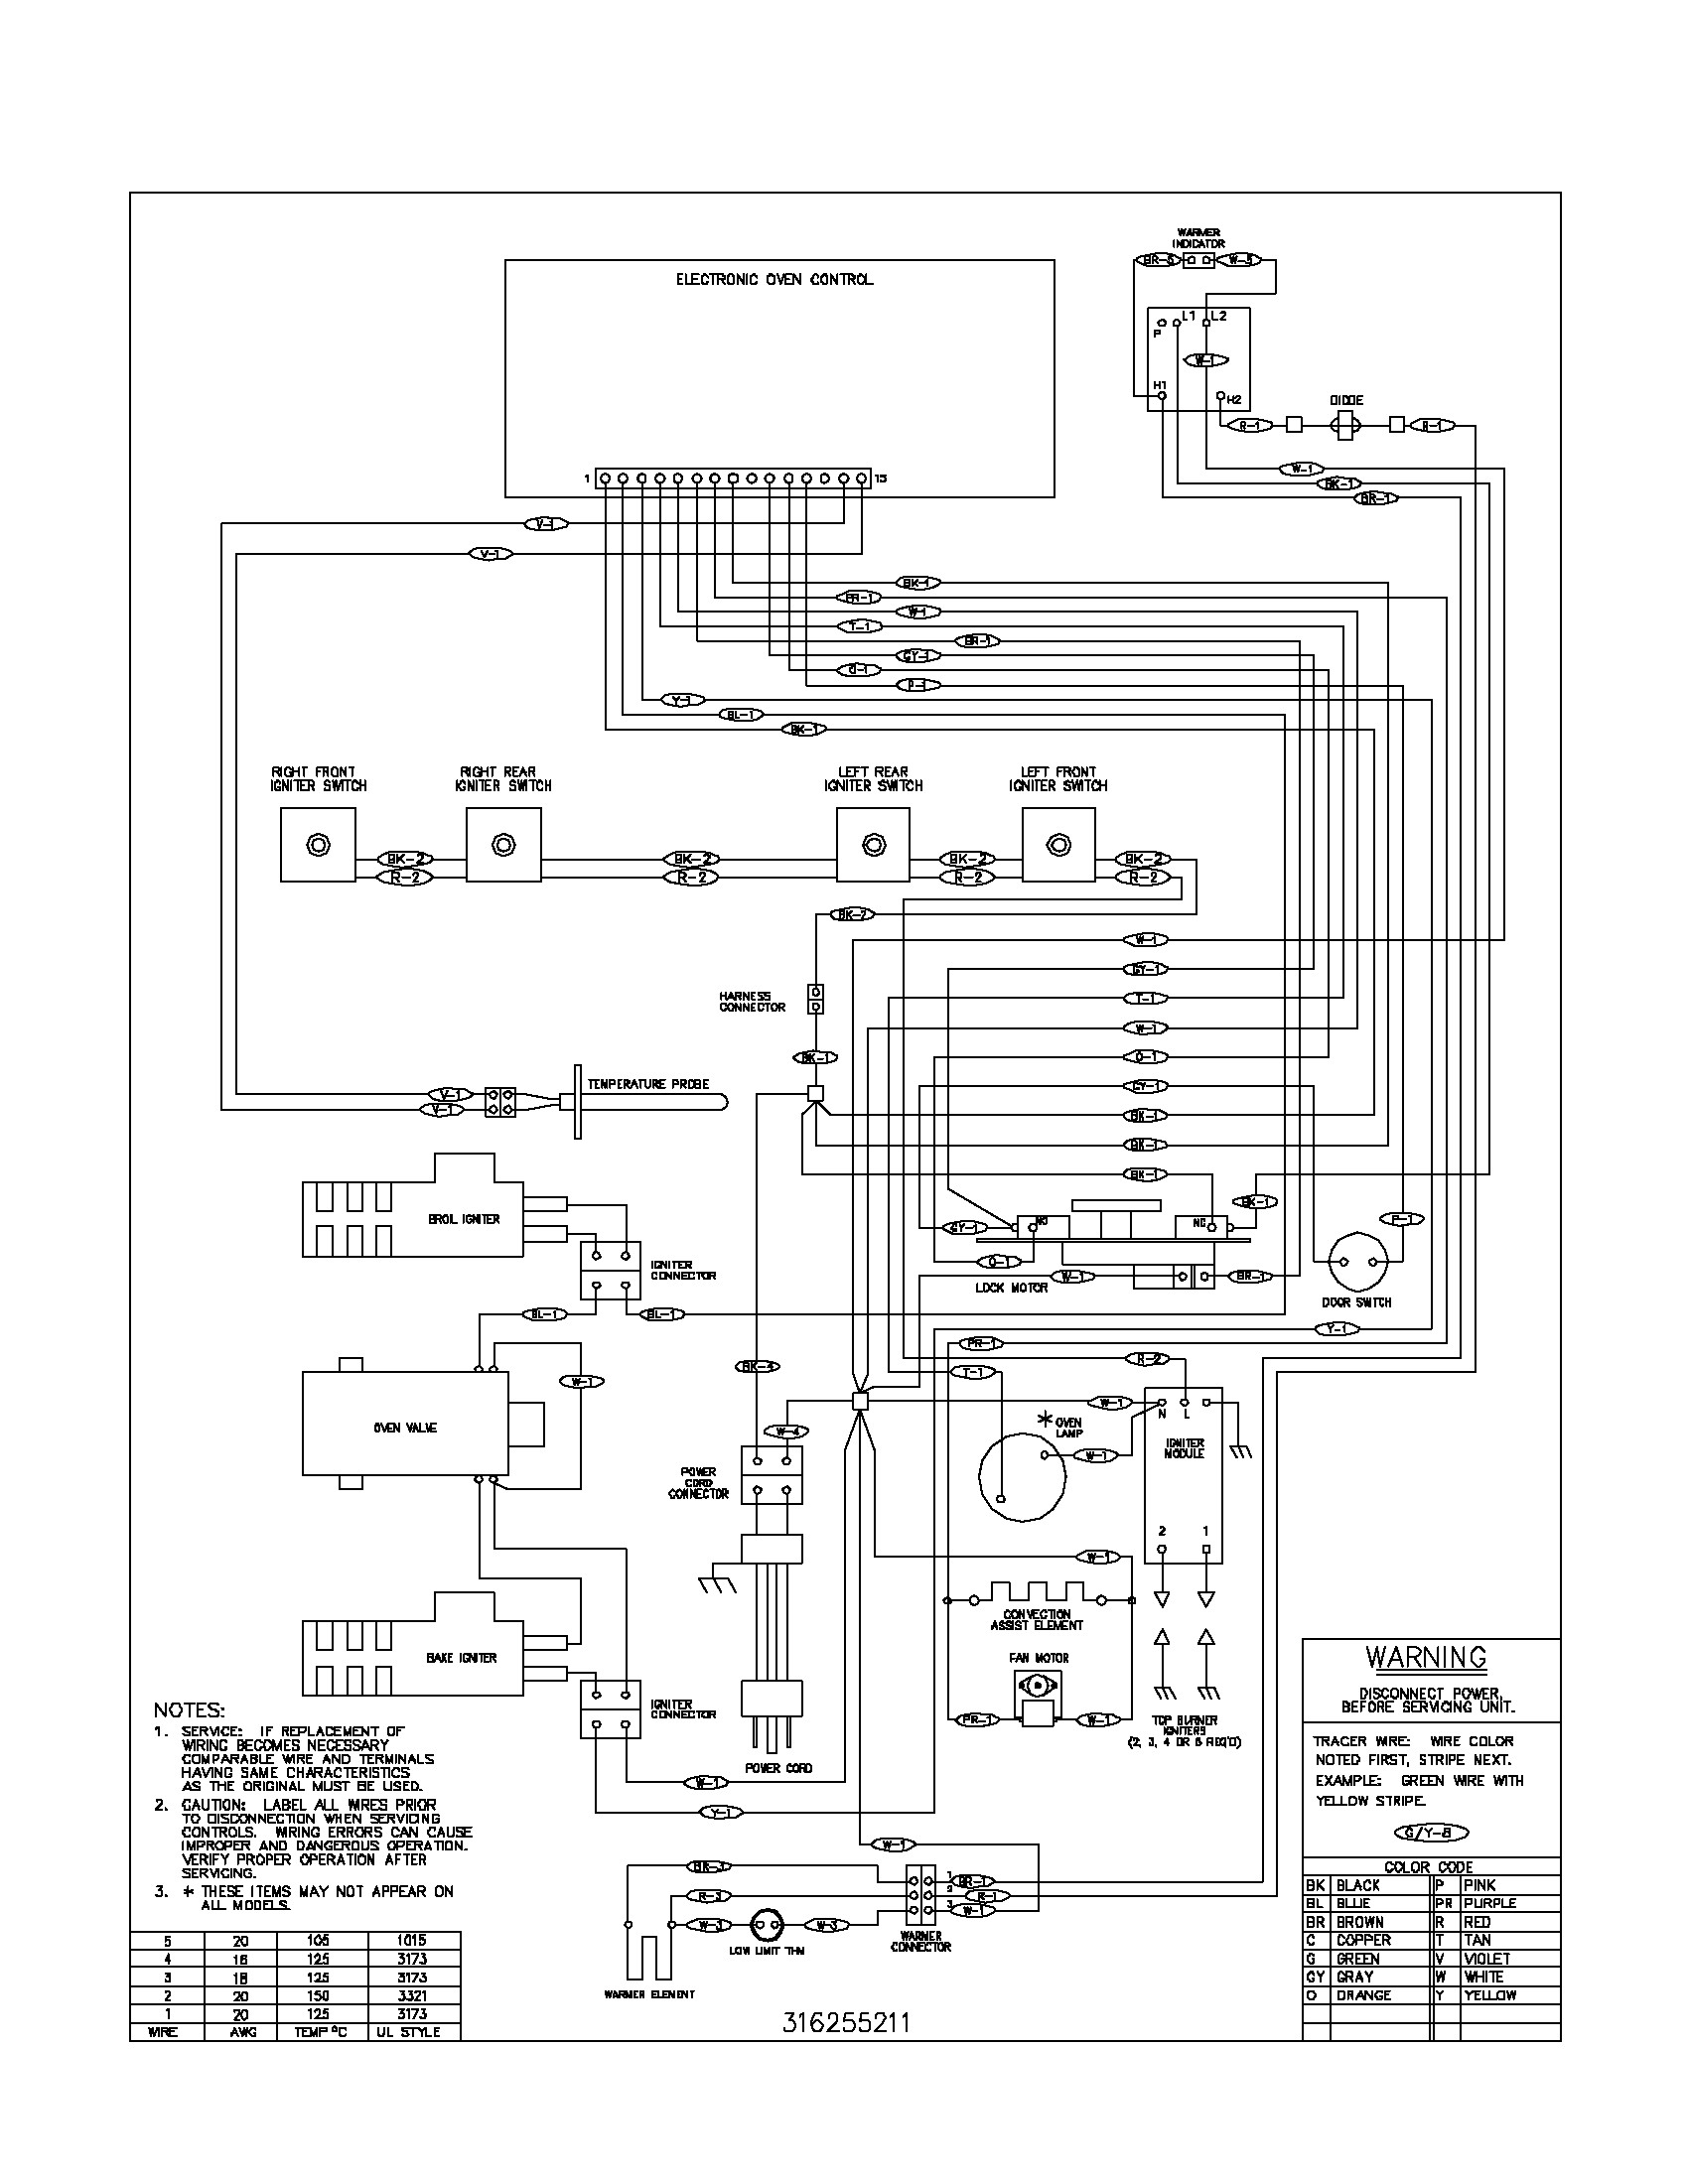 Ge Washer Motor Wiring Diagram For Ice Maker Get Gx160 Free Image Pressauto Net